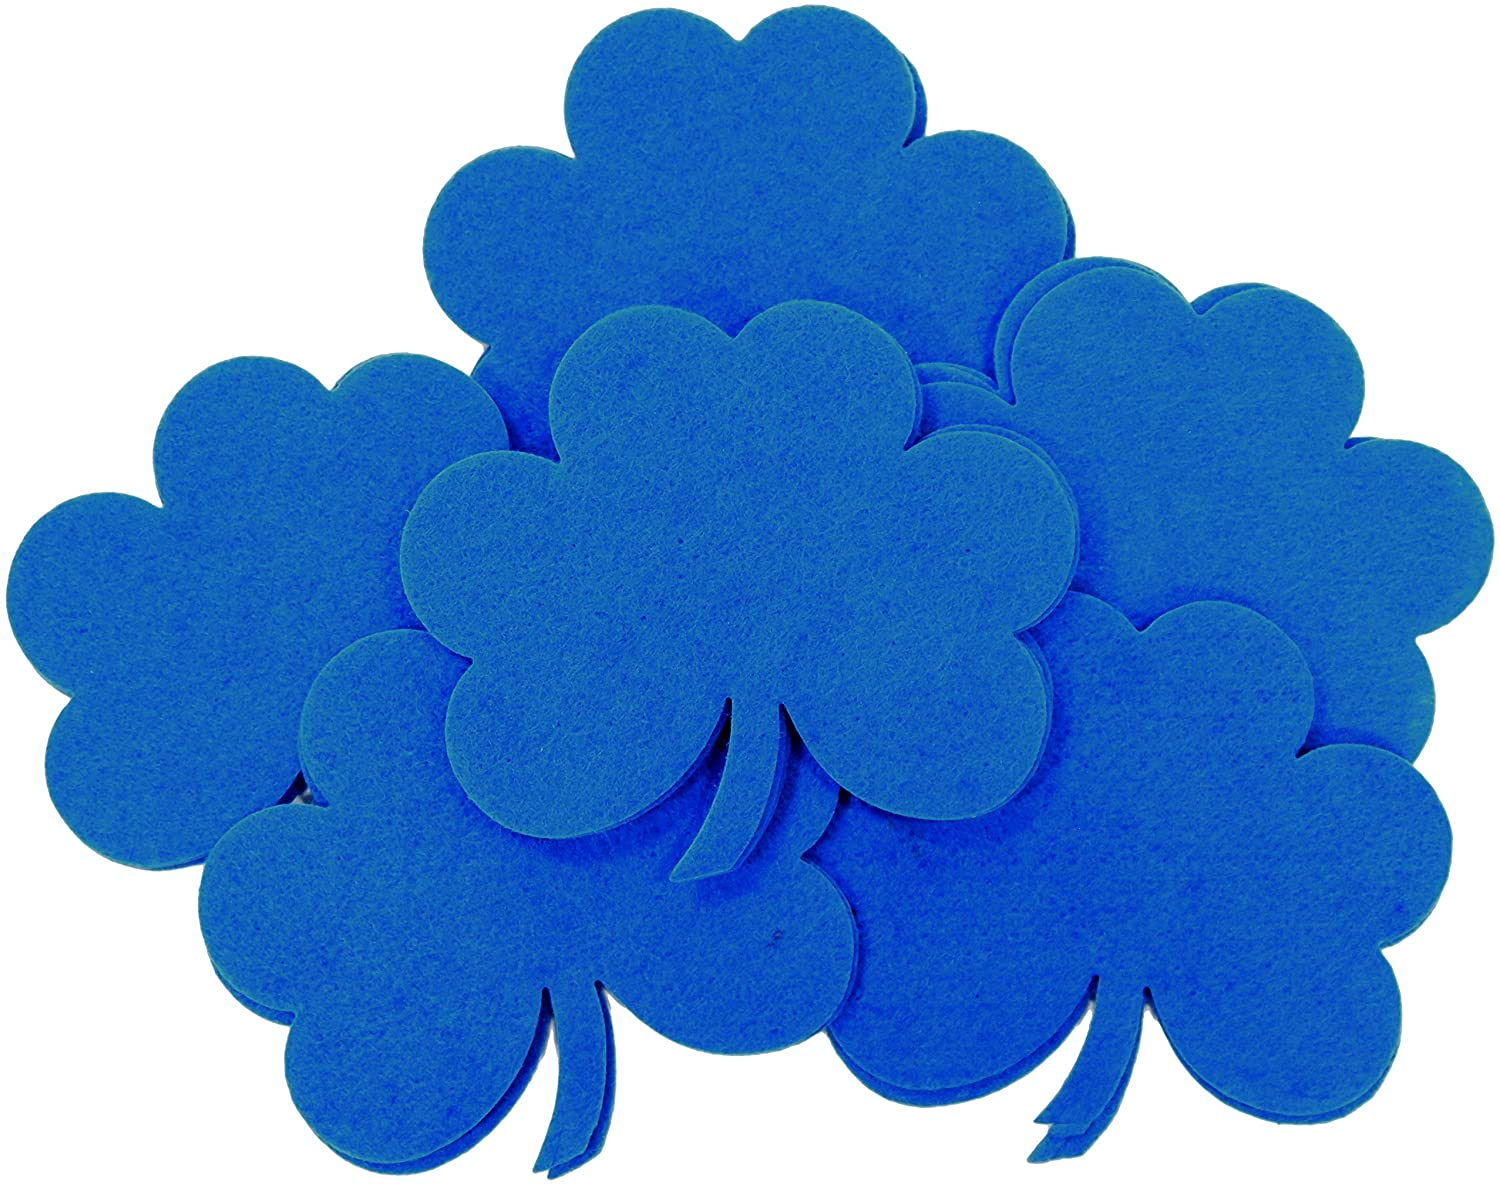 Playfully Ever After 4 Inch Clover Stiff Felt 16pc Pack (Blue)